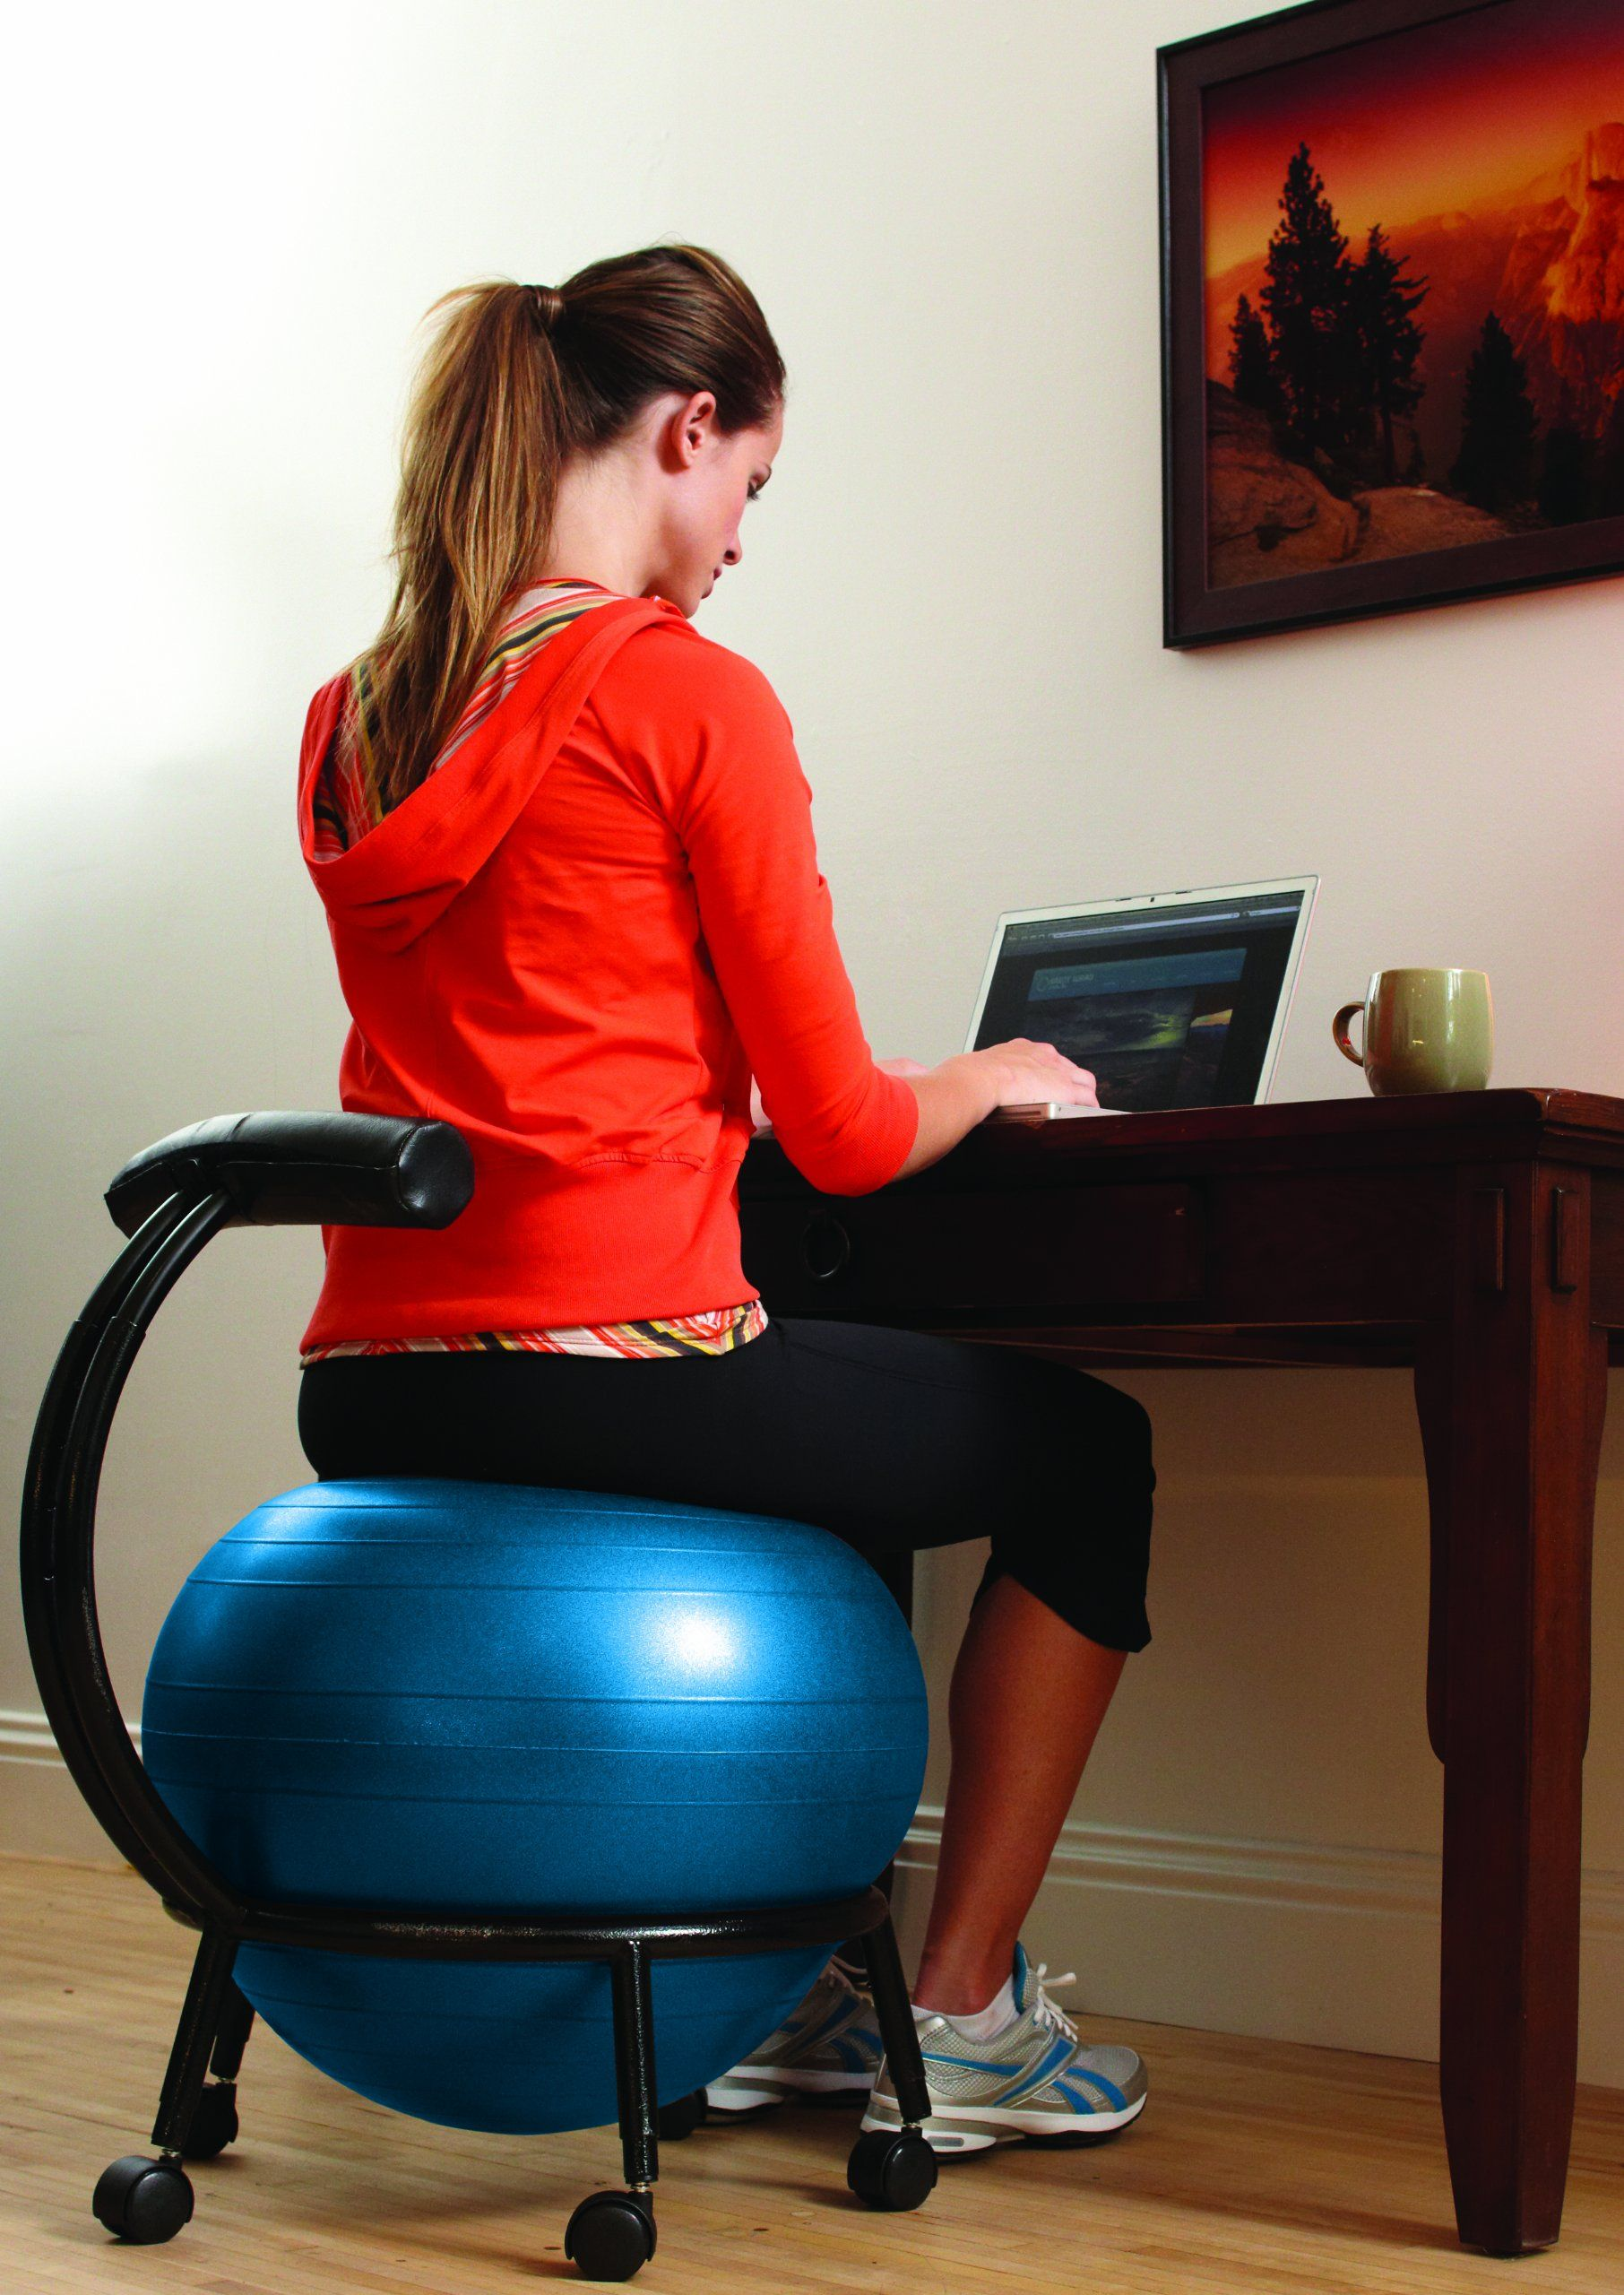 gaiam balance ball chair exercises bouncy amazon com custom fit adjustable exercise balls sports outdoors